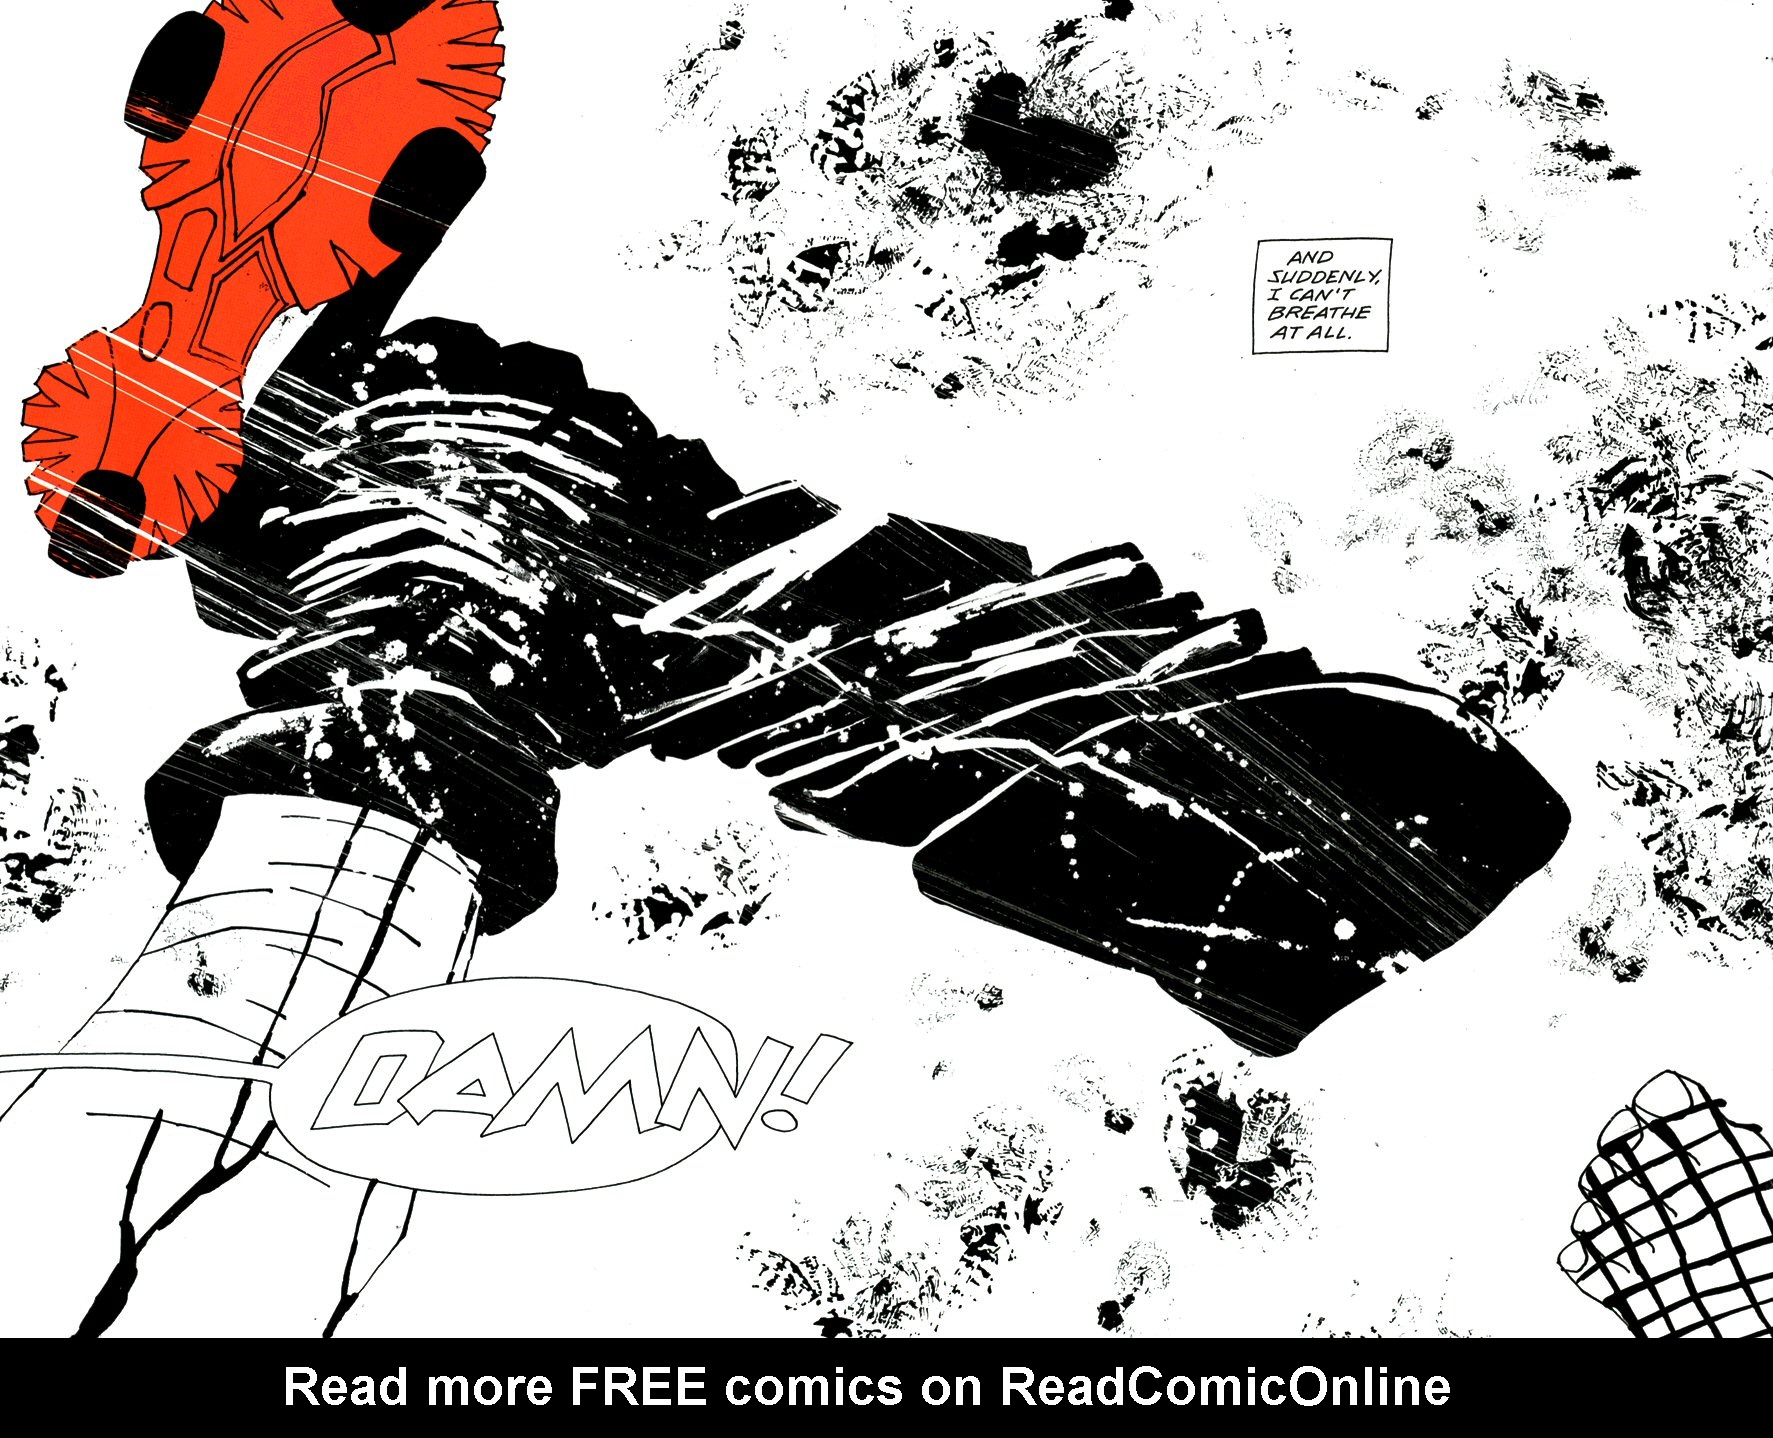 Read online Frank Miller's Holy Terror comic -  Issue # TPB - 51